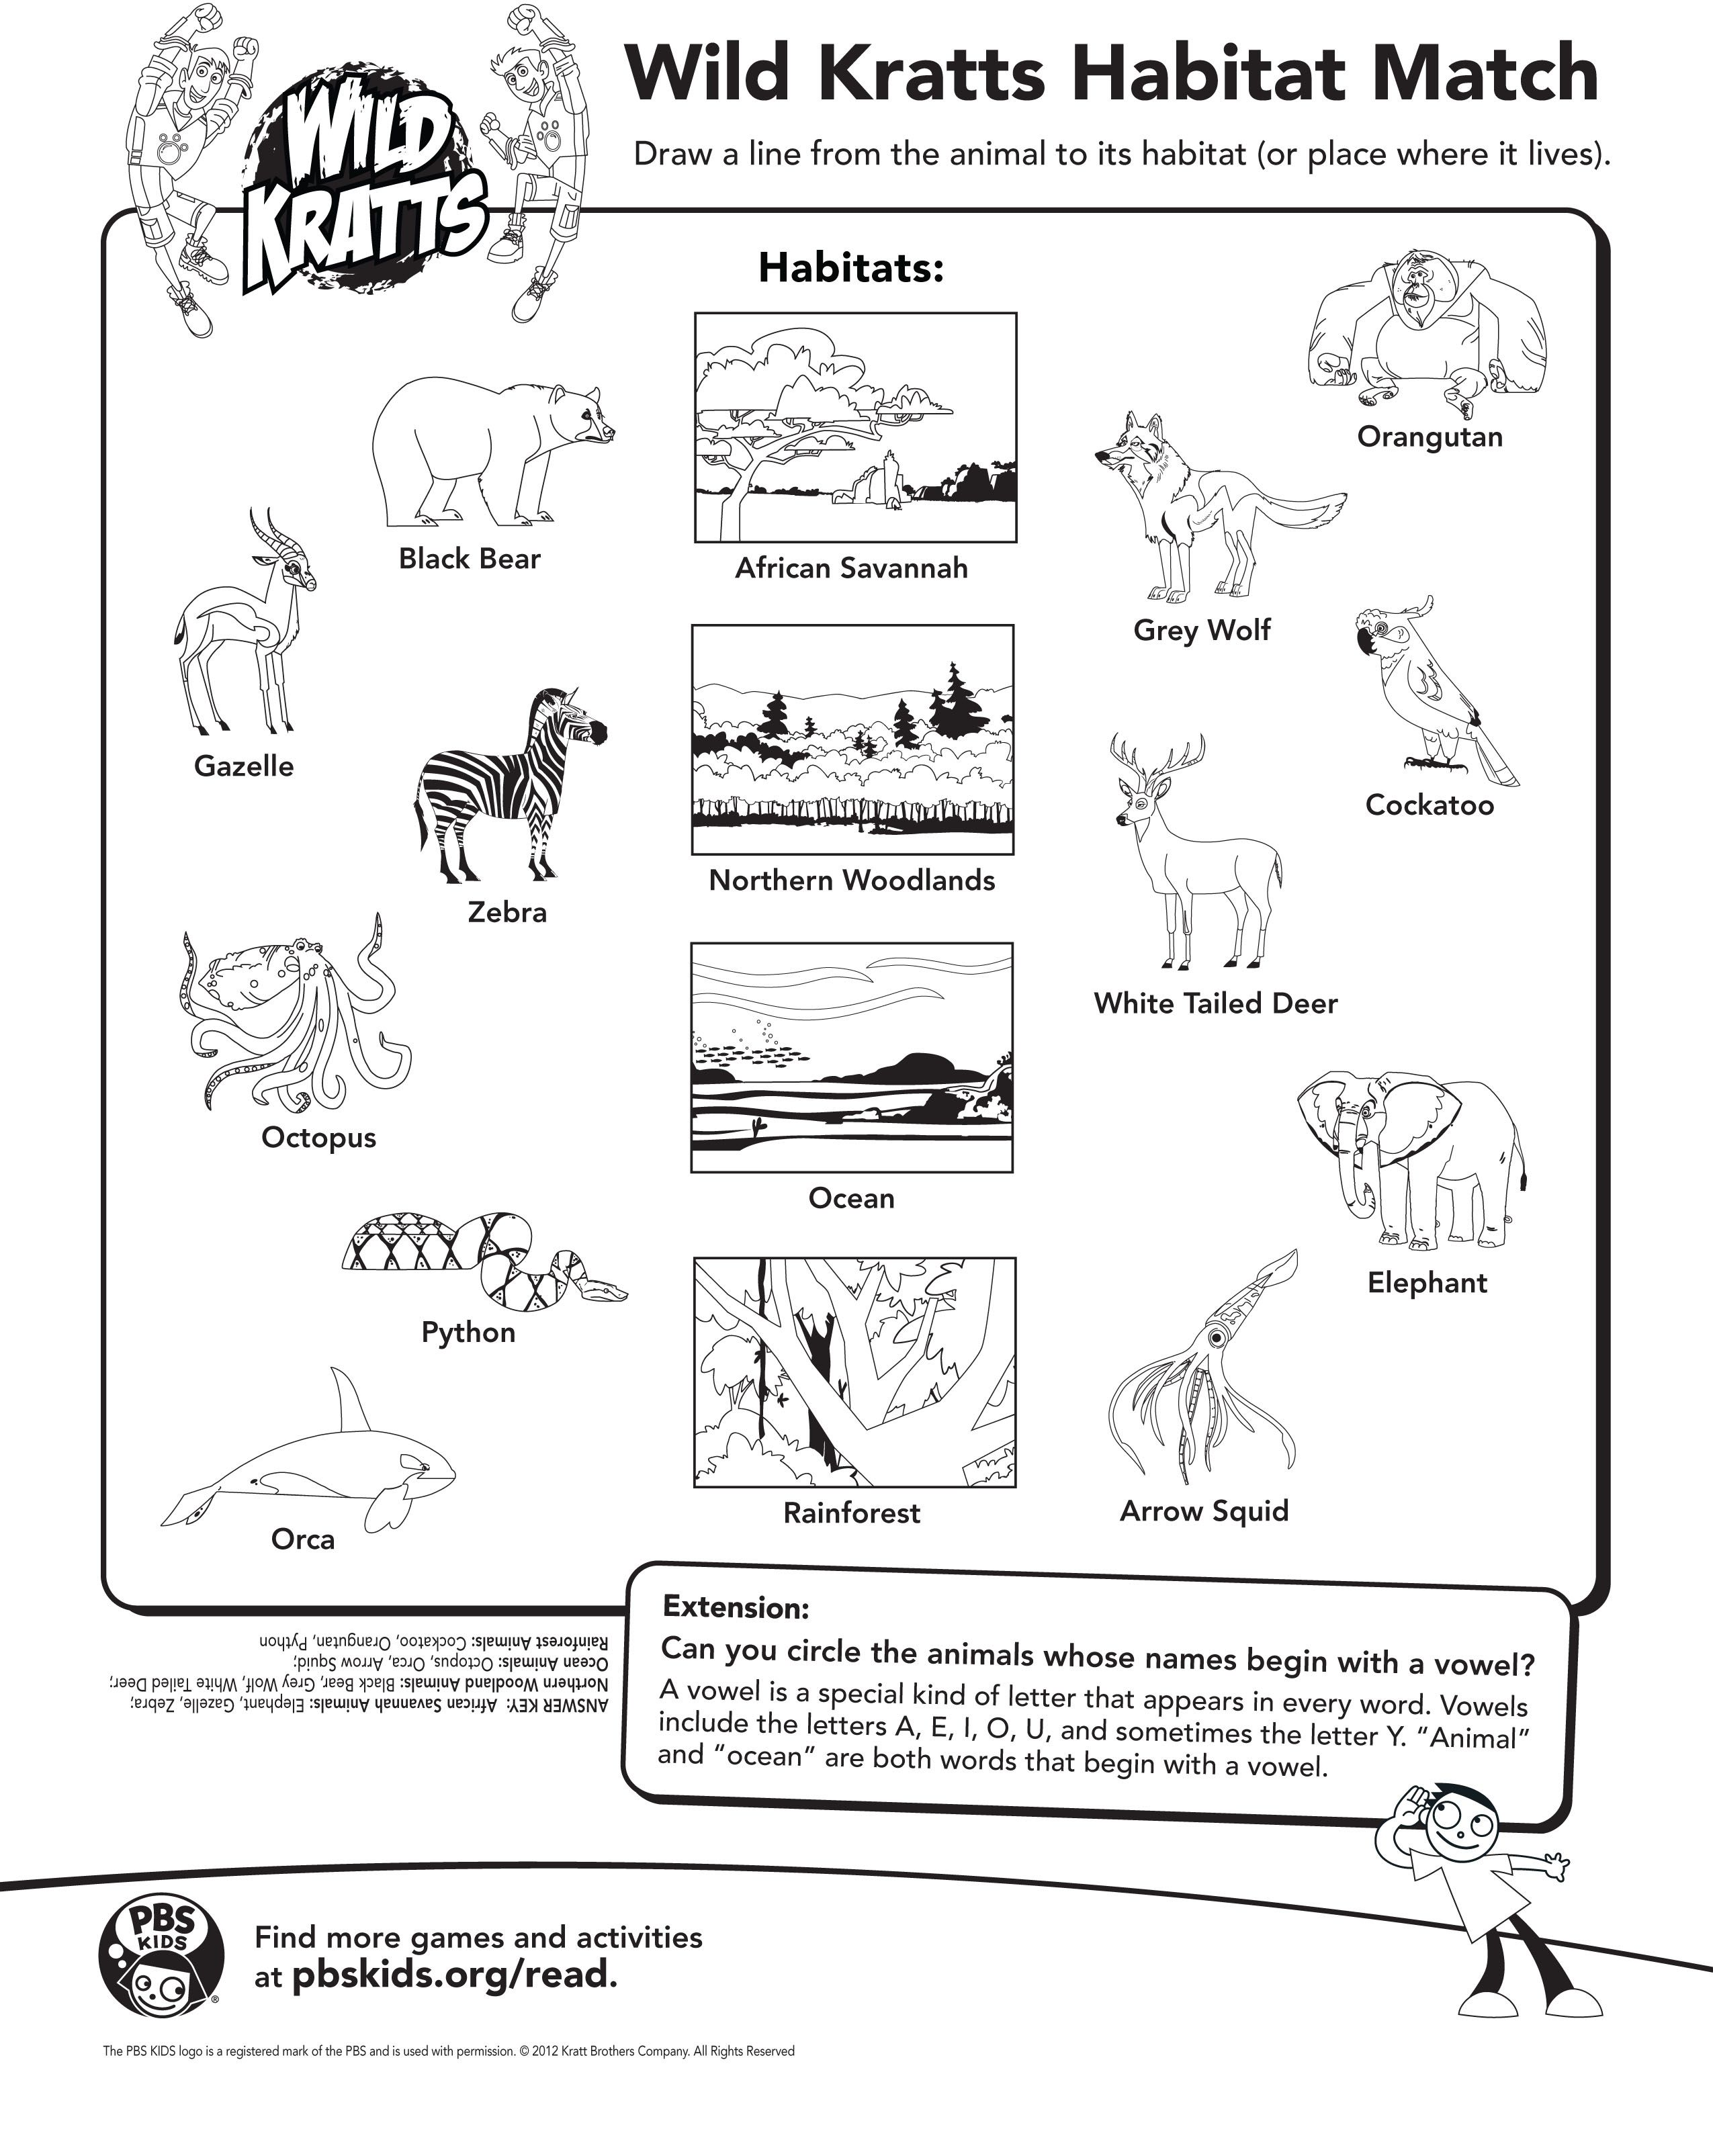 Draw A Line From The Animal To It S Habitat Wild Kratts Activity Page